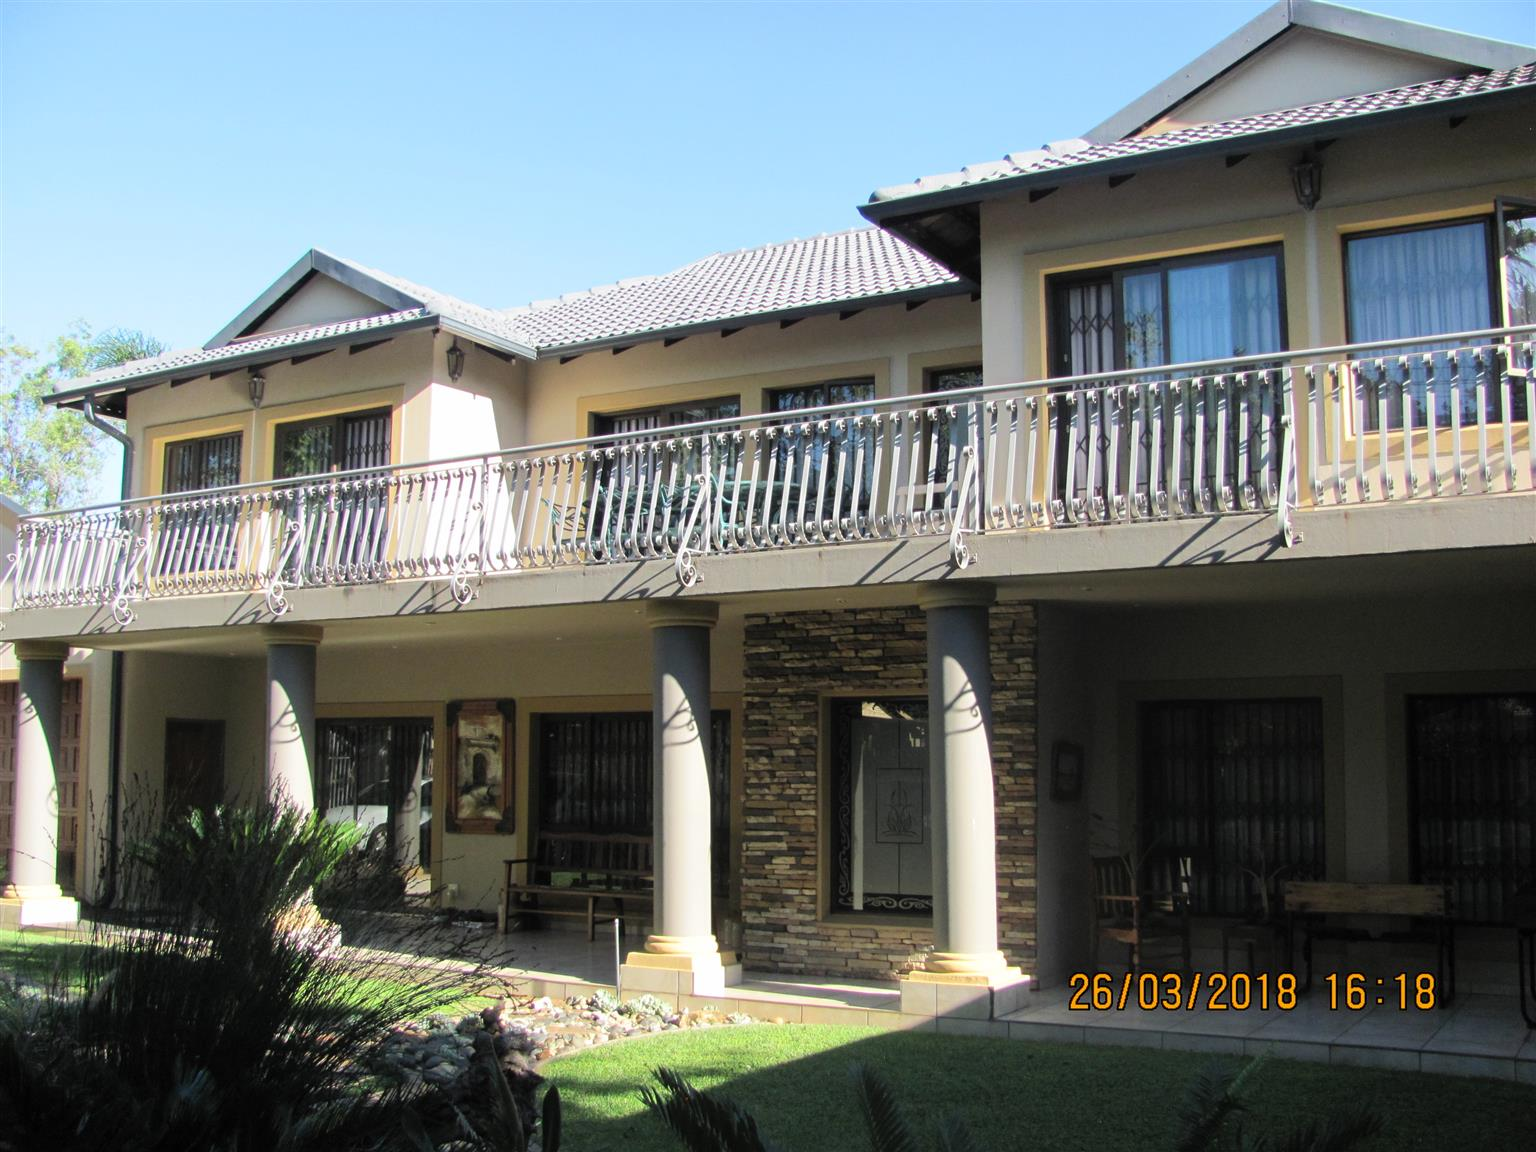 6 or 7 Bedroom House with 4 full Bathroom for sale in Waverley Pretoria